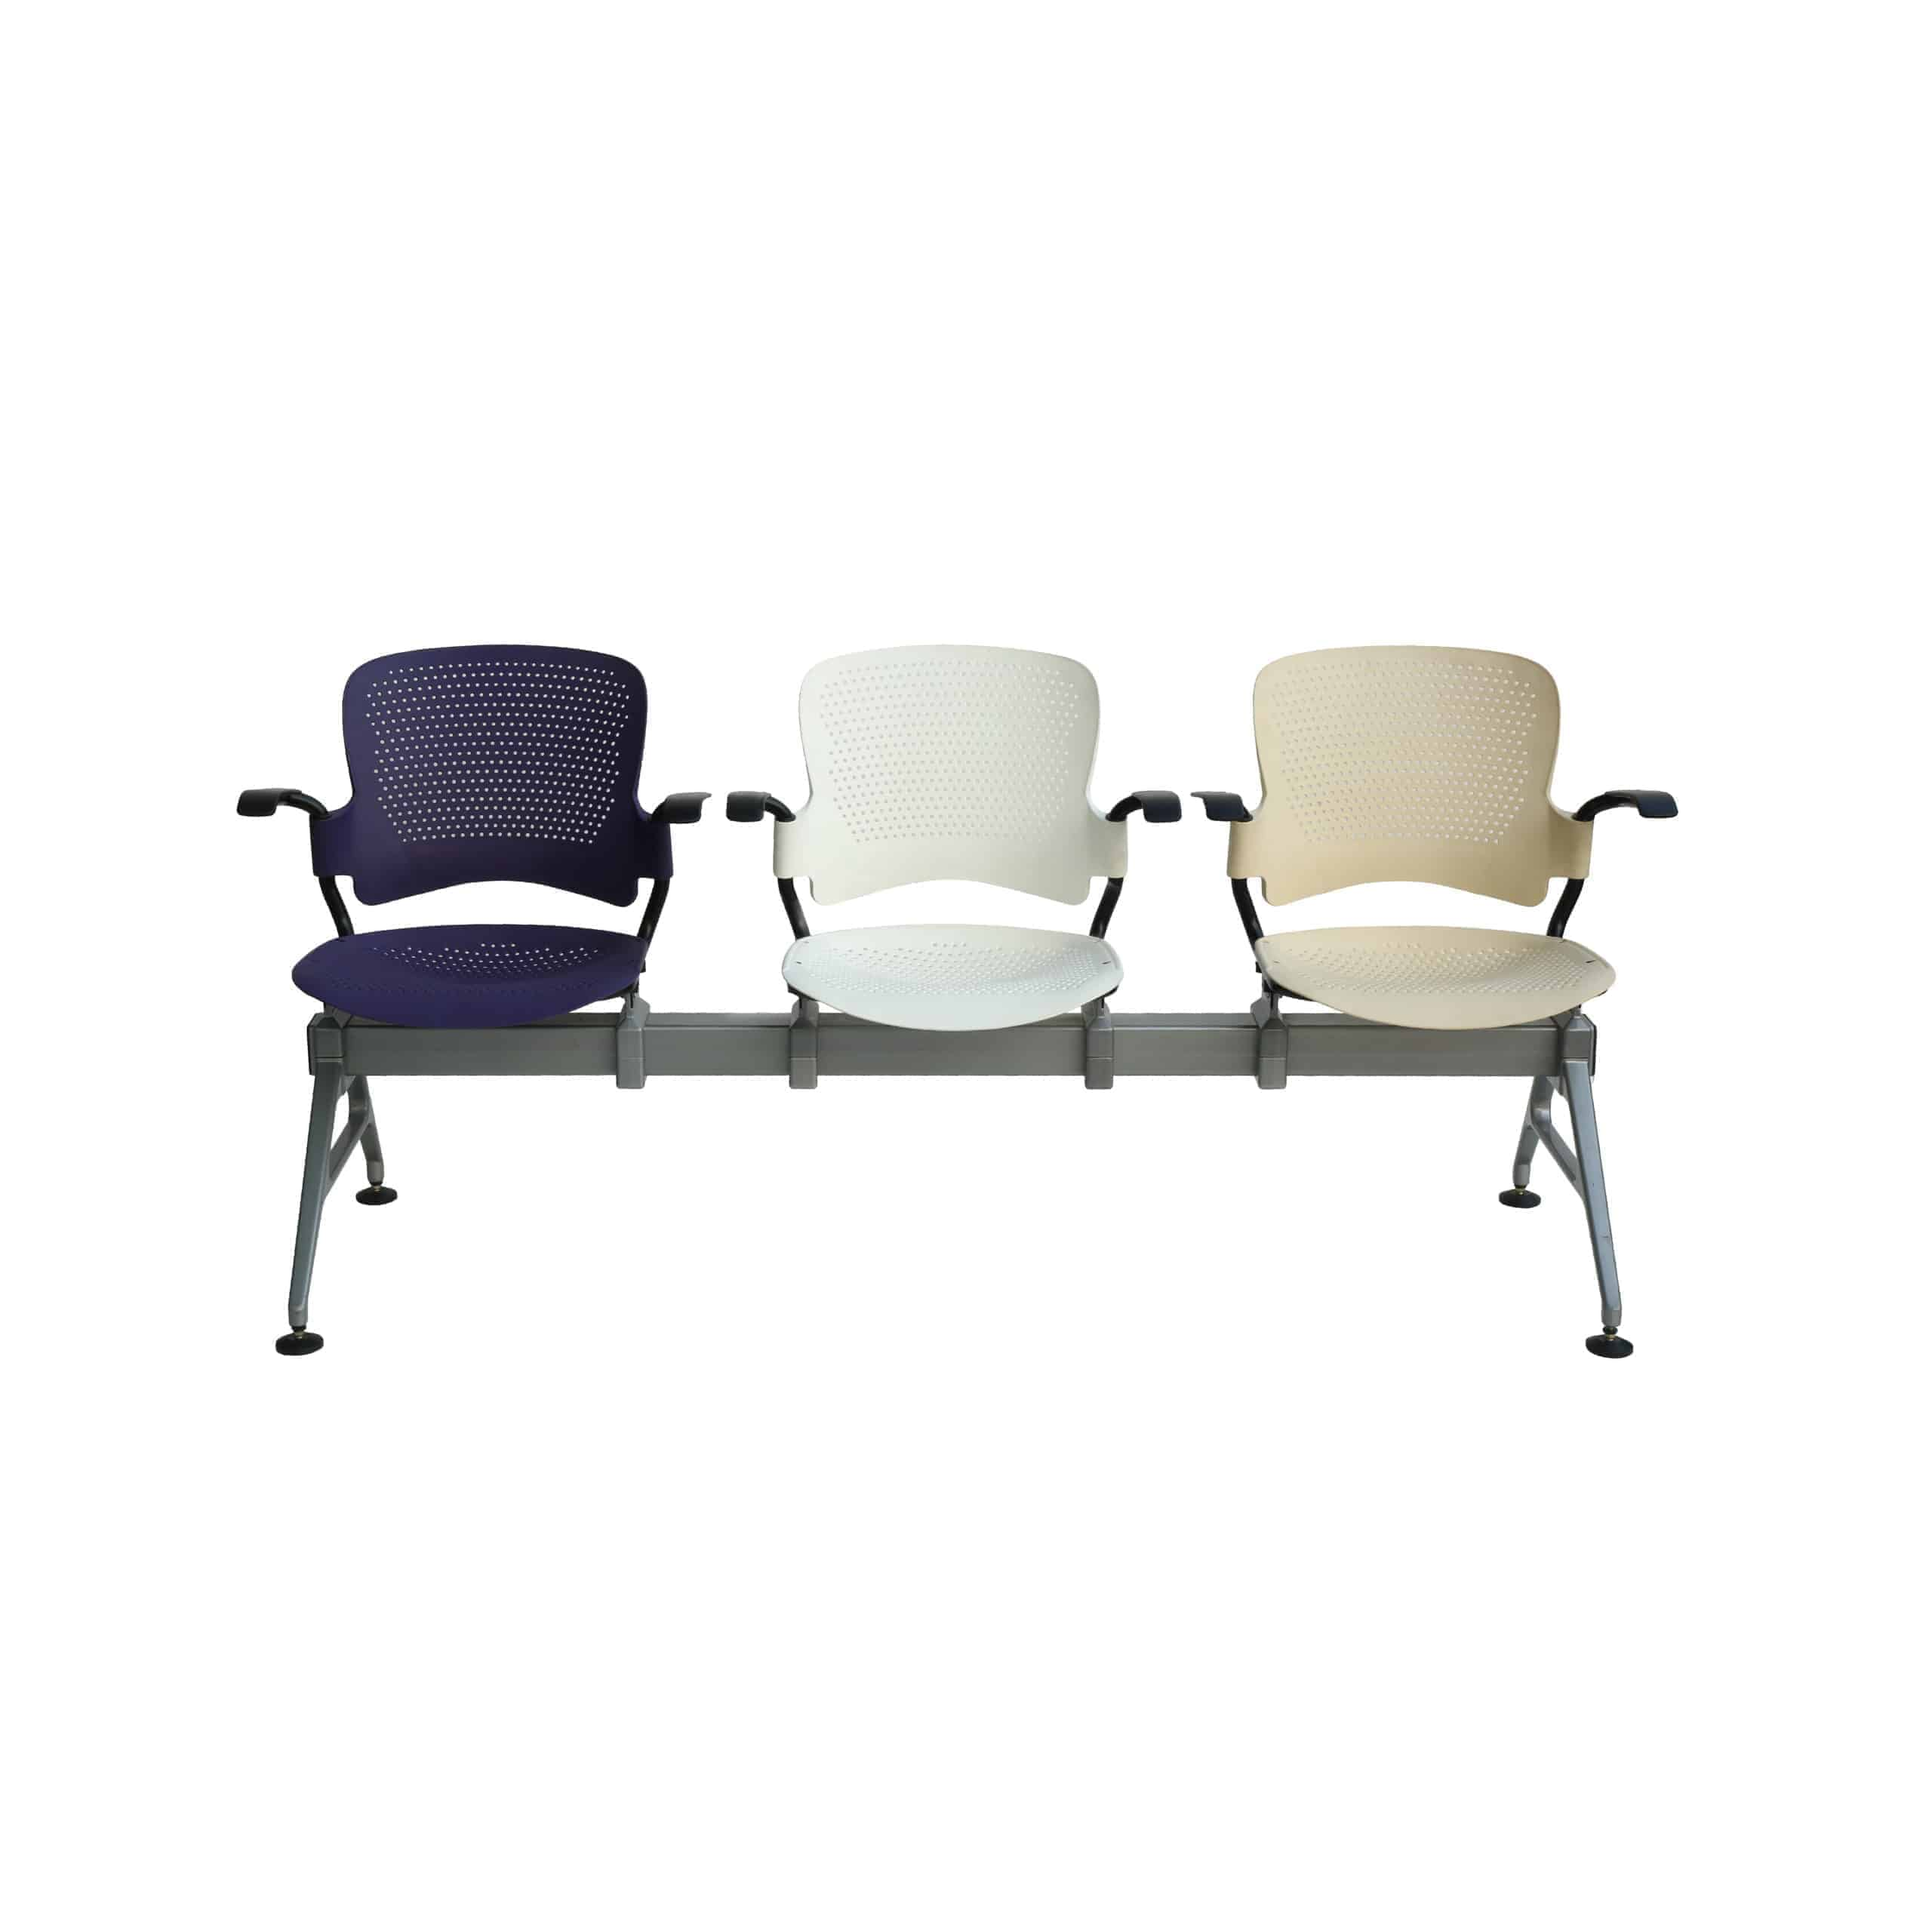 Polyurethene molded Three seater Empty medical waiting room chairs with purple,white and halfwhite colour displayed in white background